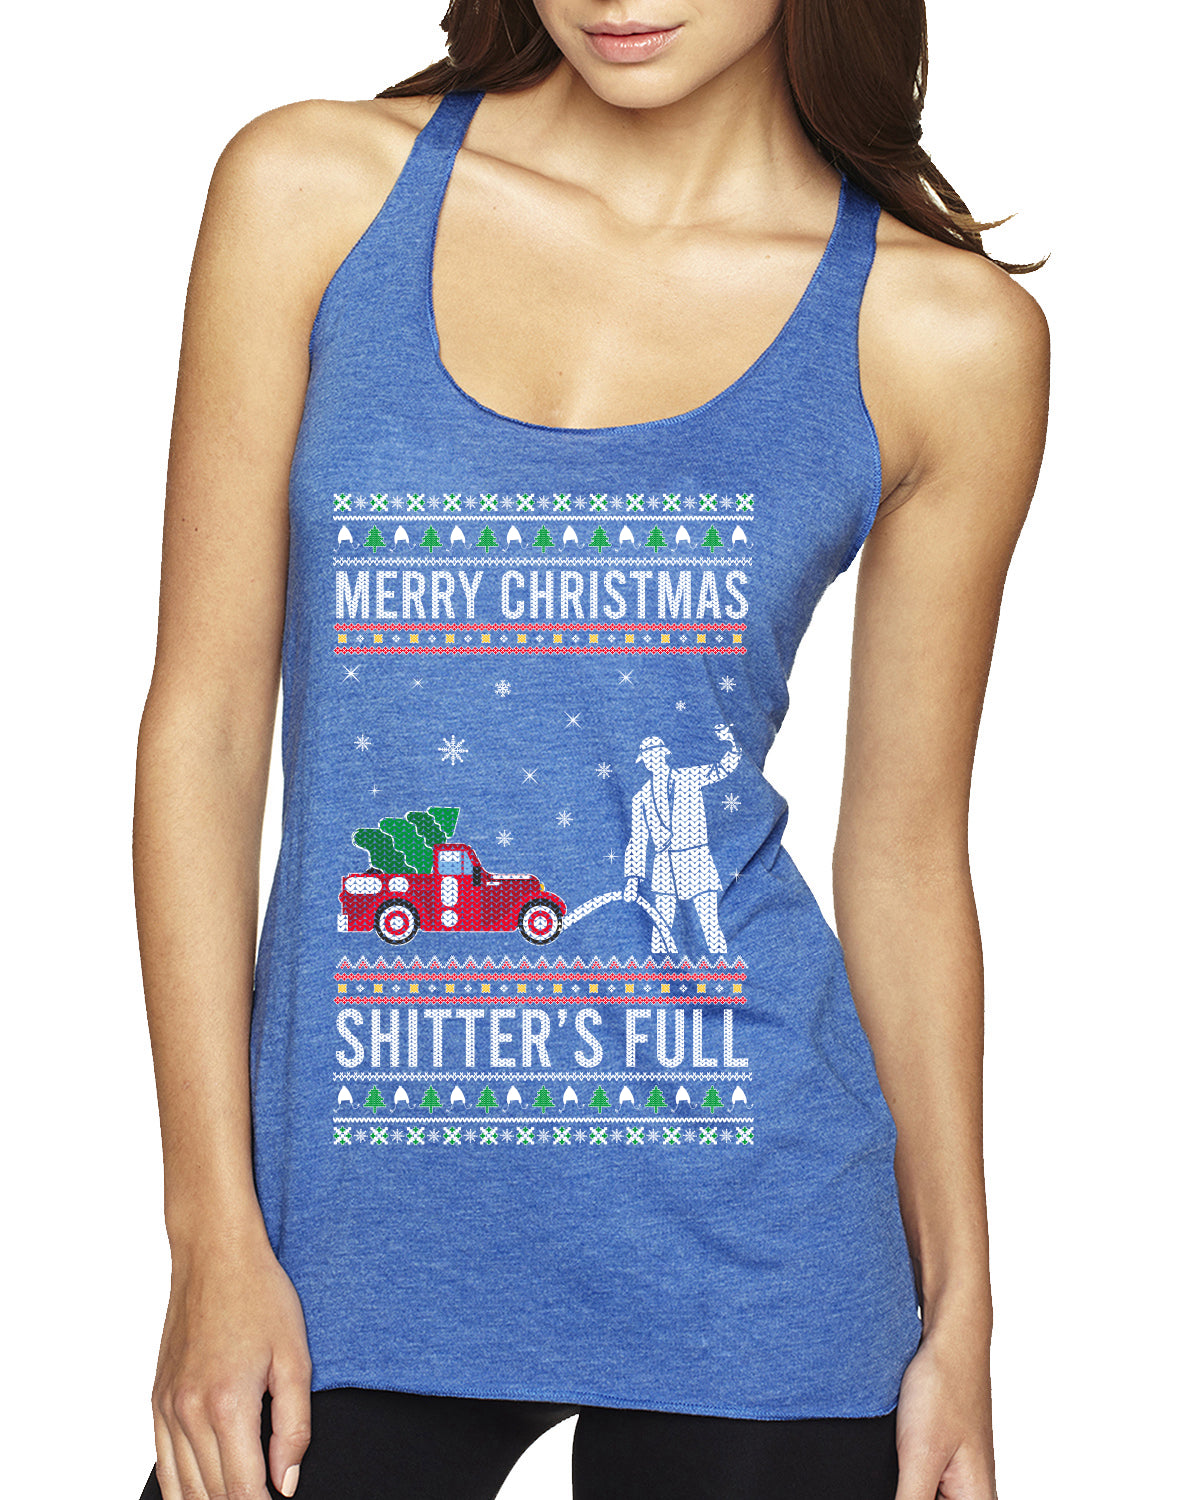 Merry Christmas Shitter's Full Christmas Vacation Ugly Christmas Sweater Tri-Blend Racerback Tank Top